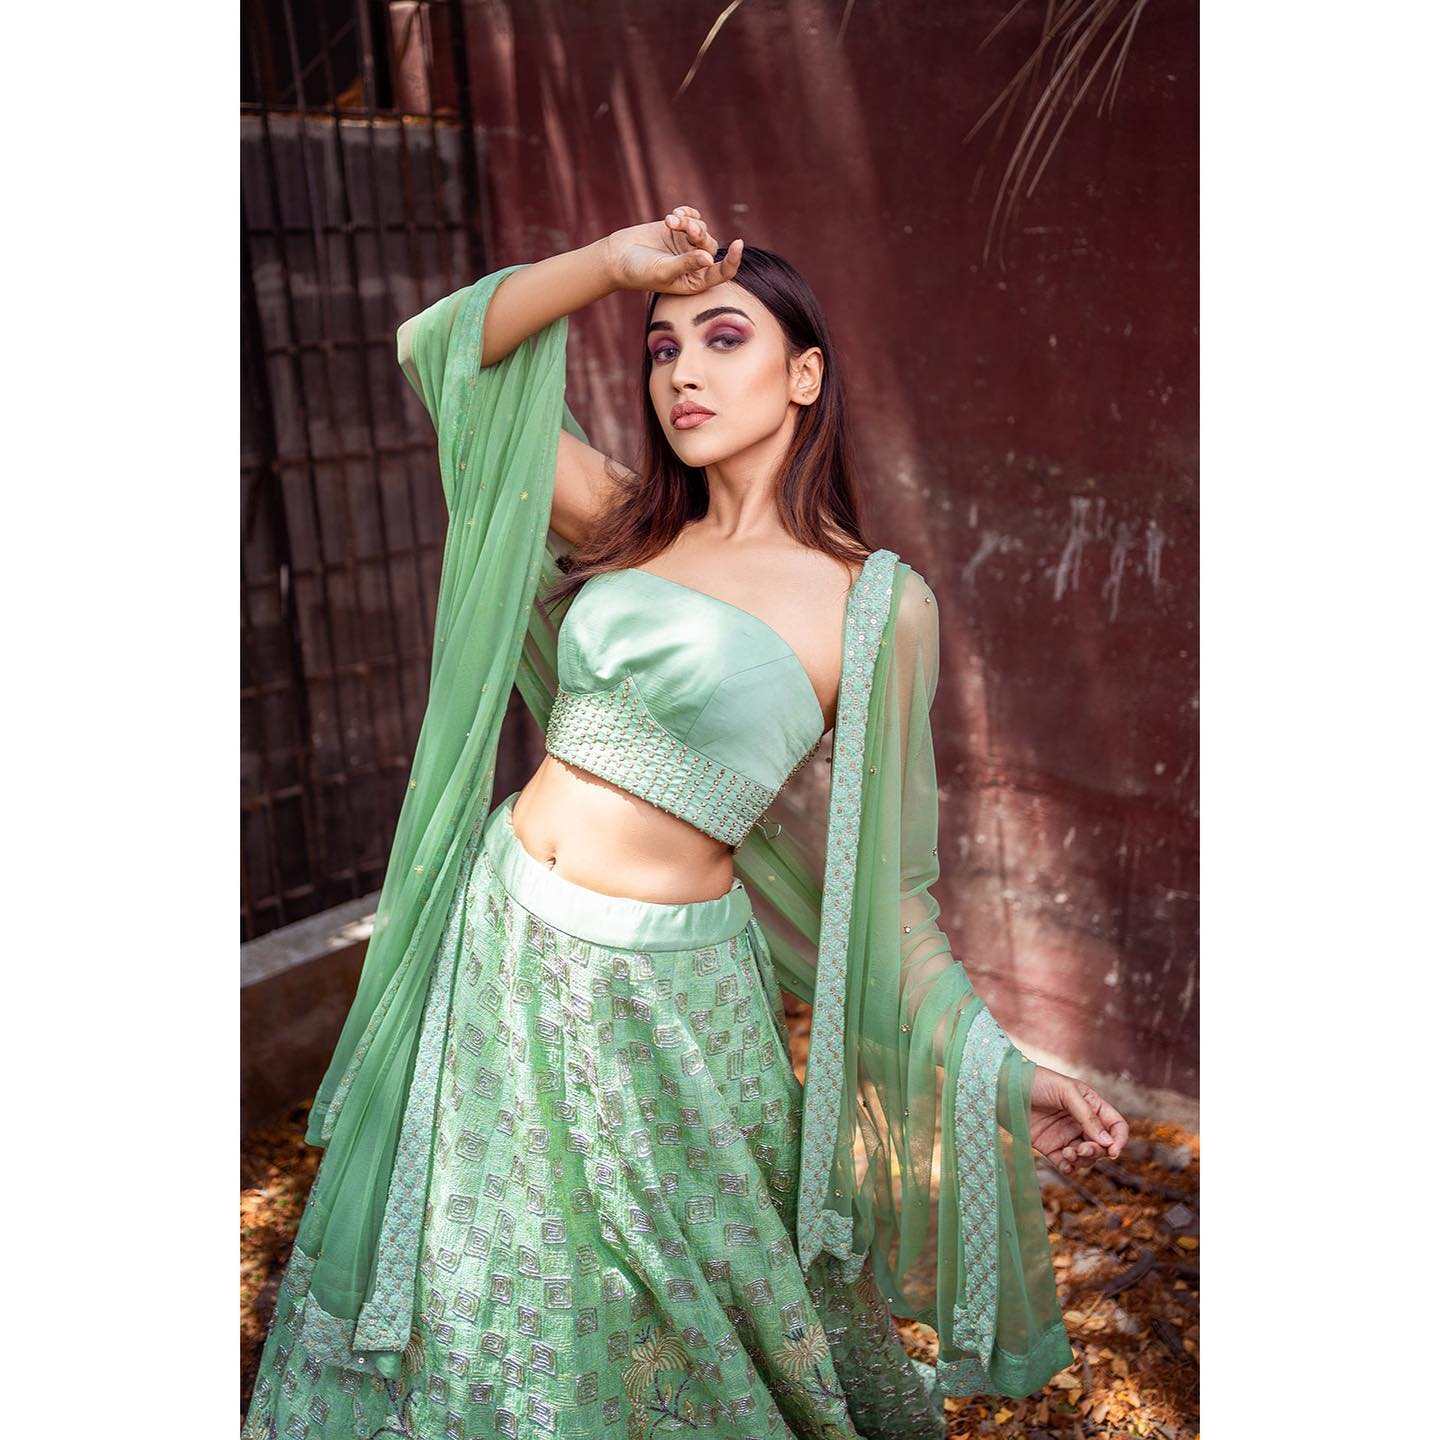 ~ BRIDAL COUTURE ~ A bespoke couture from Architha Narayanam is a reflection of an artistic vision. An exquisite couture whimsically with ditsy florals geometric spirals in a bright sage green hue finished in surreal thread and zardosi work. 2021-04-23